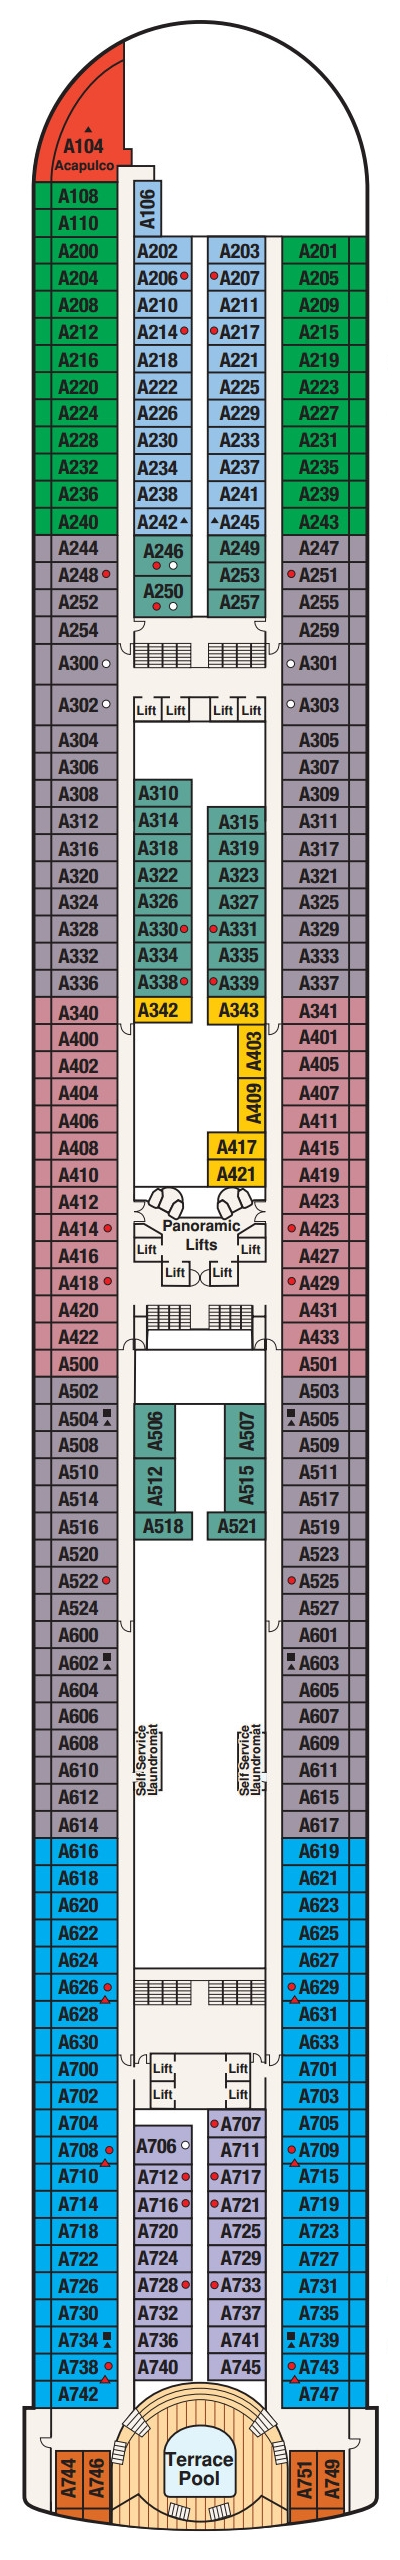 Diamond Princess Aloha Deck 12 layout